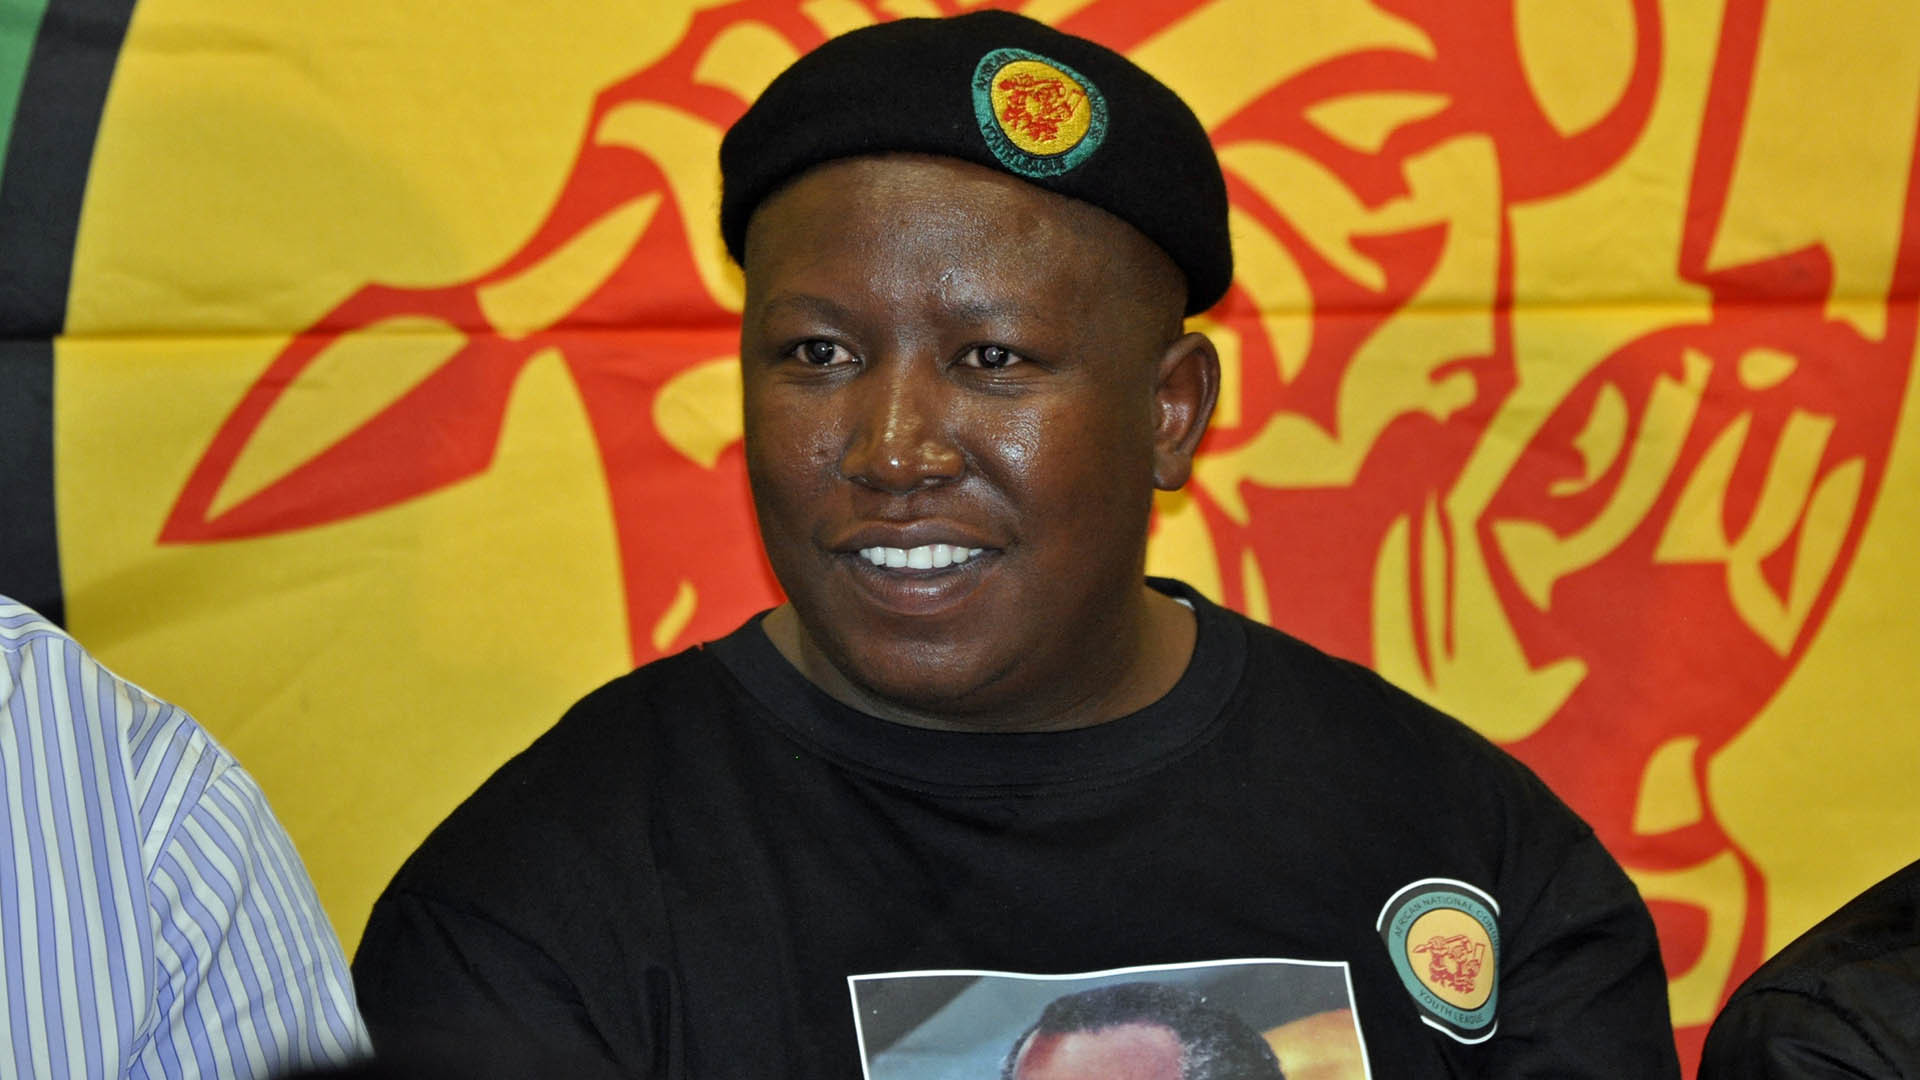 South African Political Leader: No Guarantee for Whites